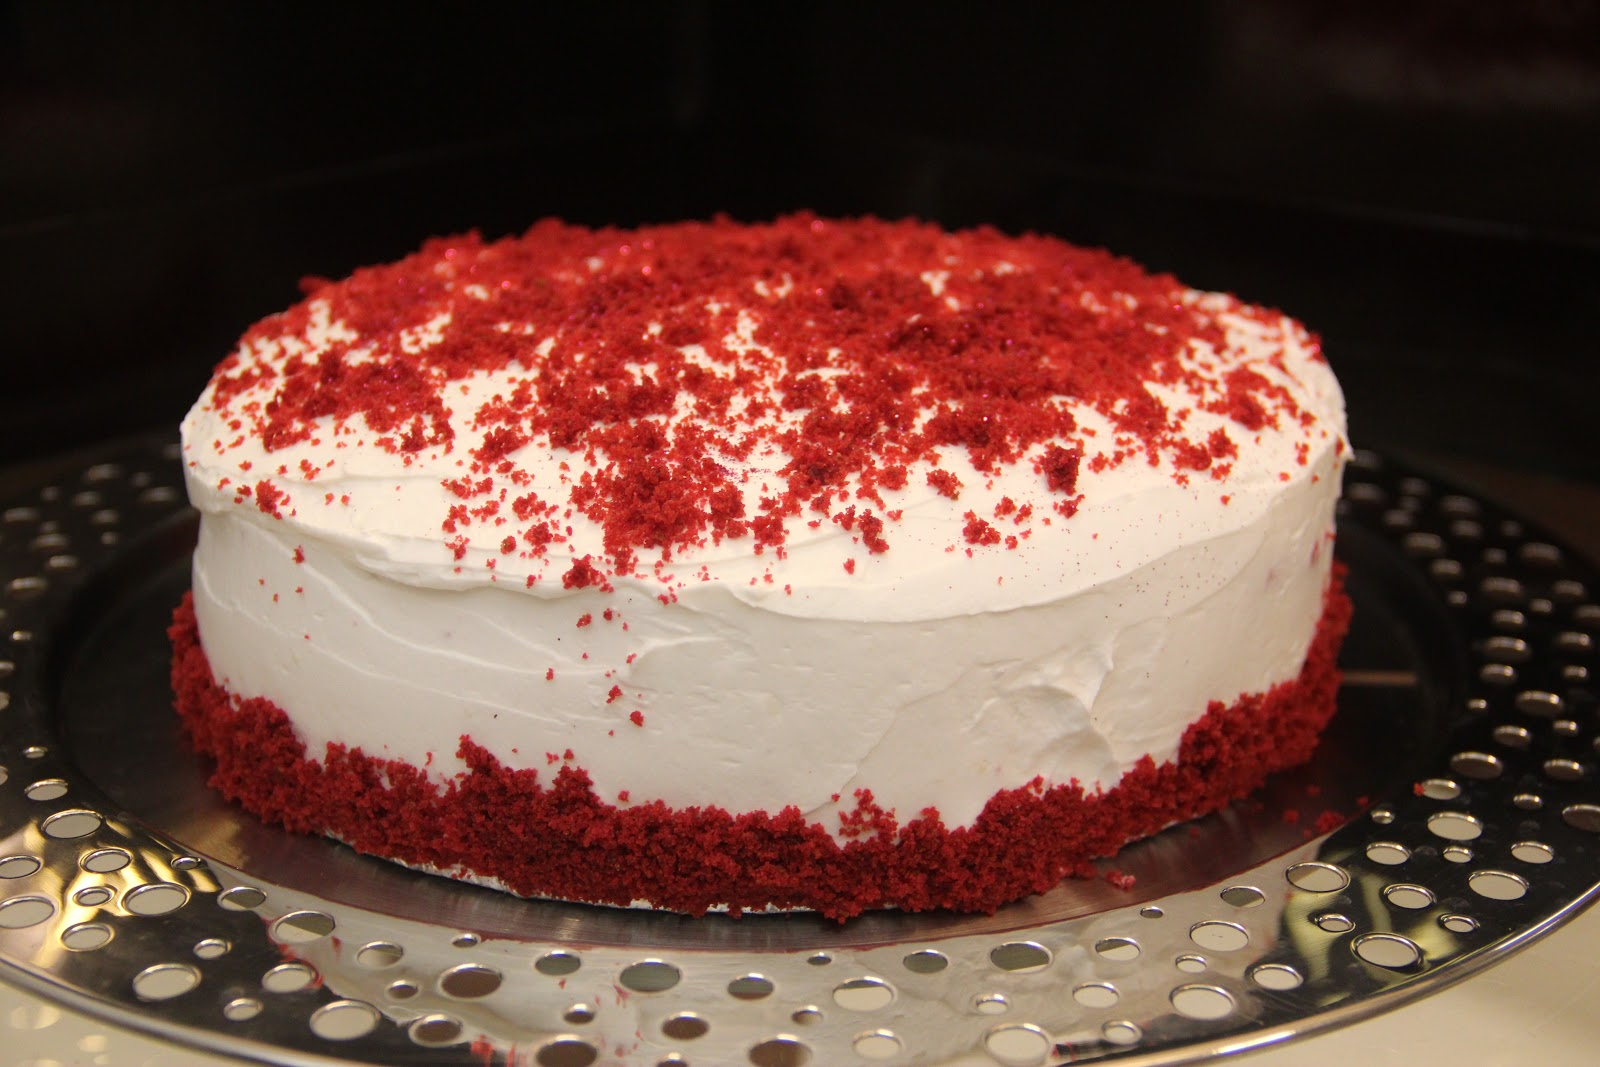 Images Of Red Cake : Red Velvet Cake Recipe   Dishmaps